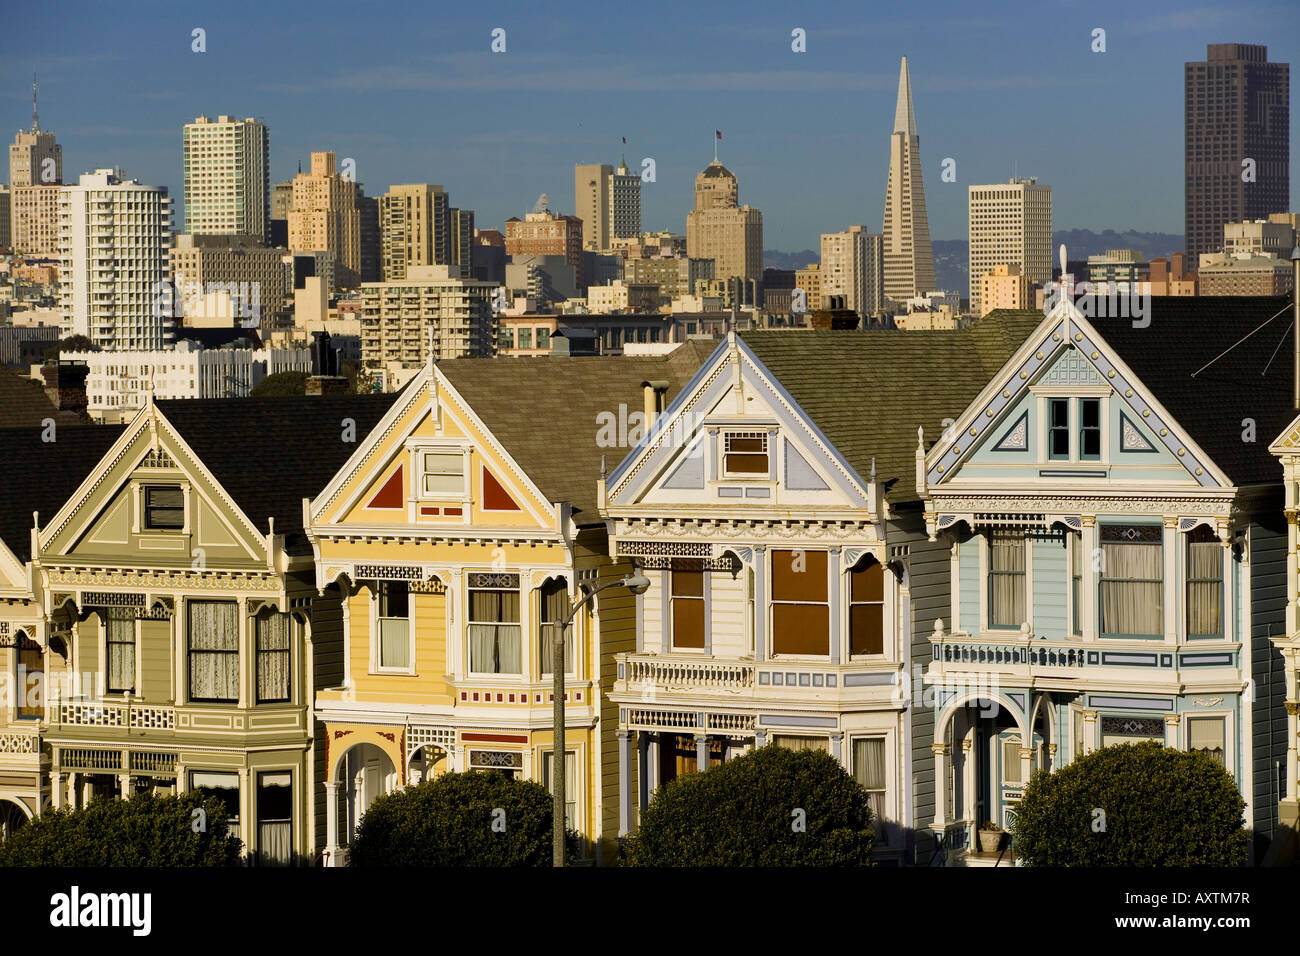 Restored Victorian houses and the San Francisco skyline. - Stock Image